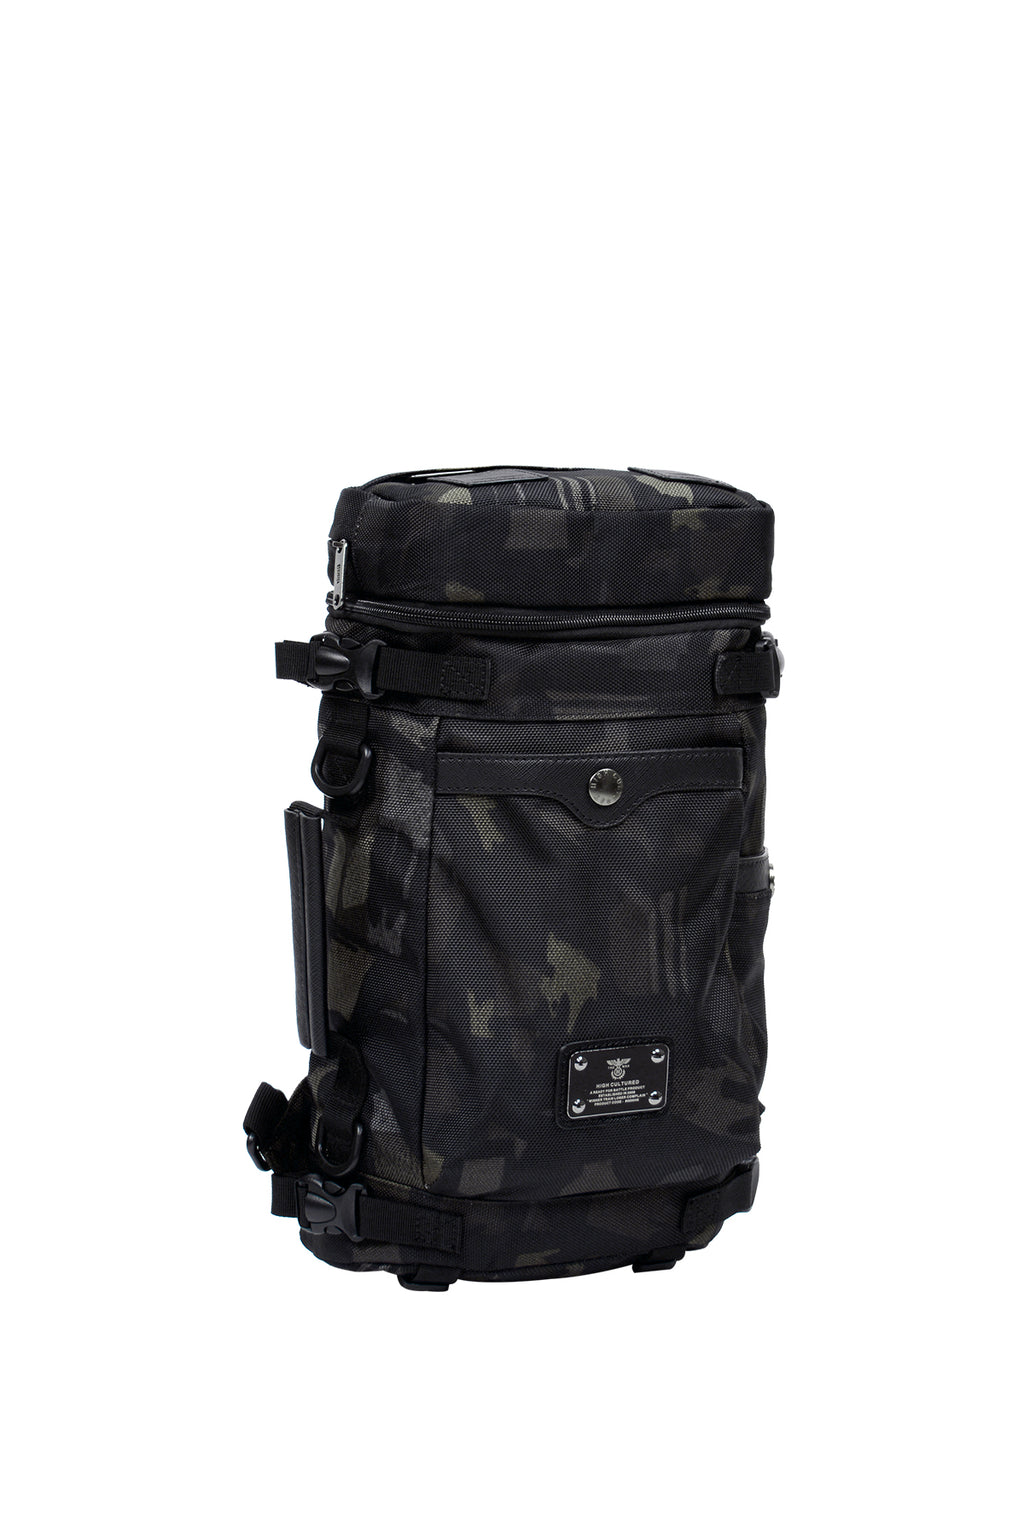 BRUSH CAMO MULTIPURPOSE SHOULDER BAG- 40